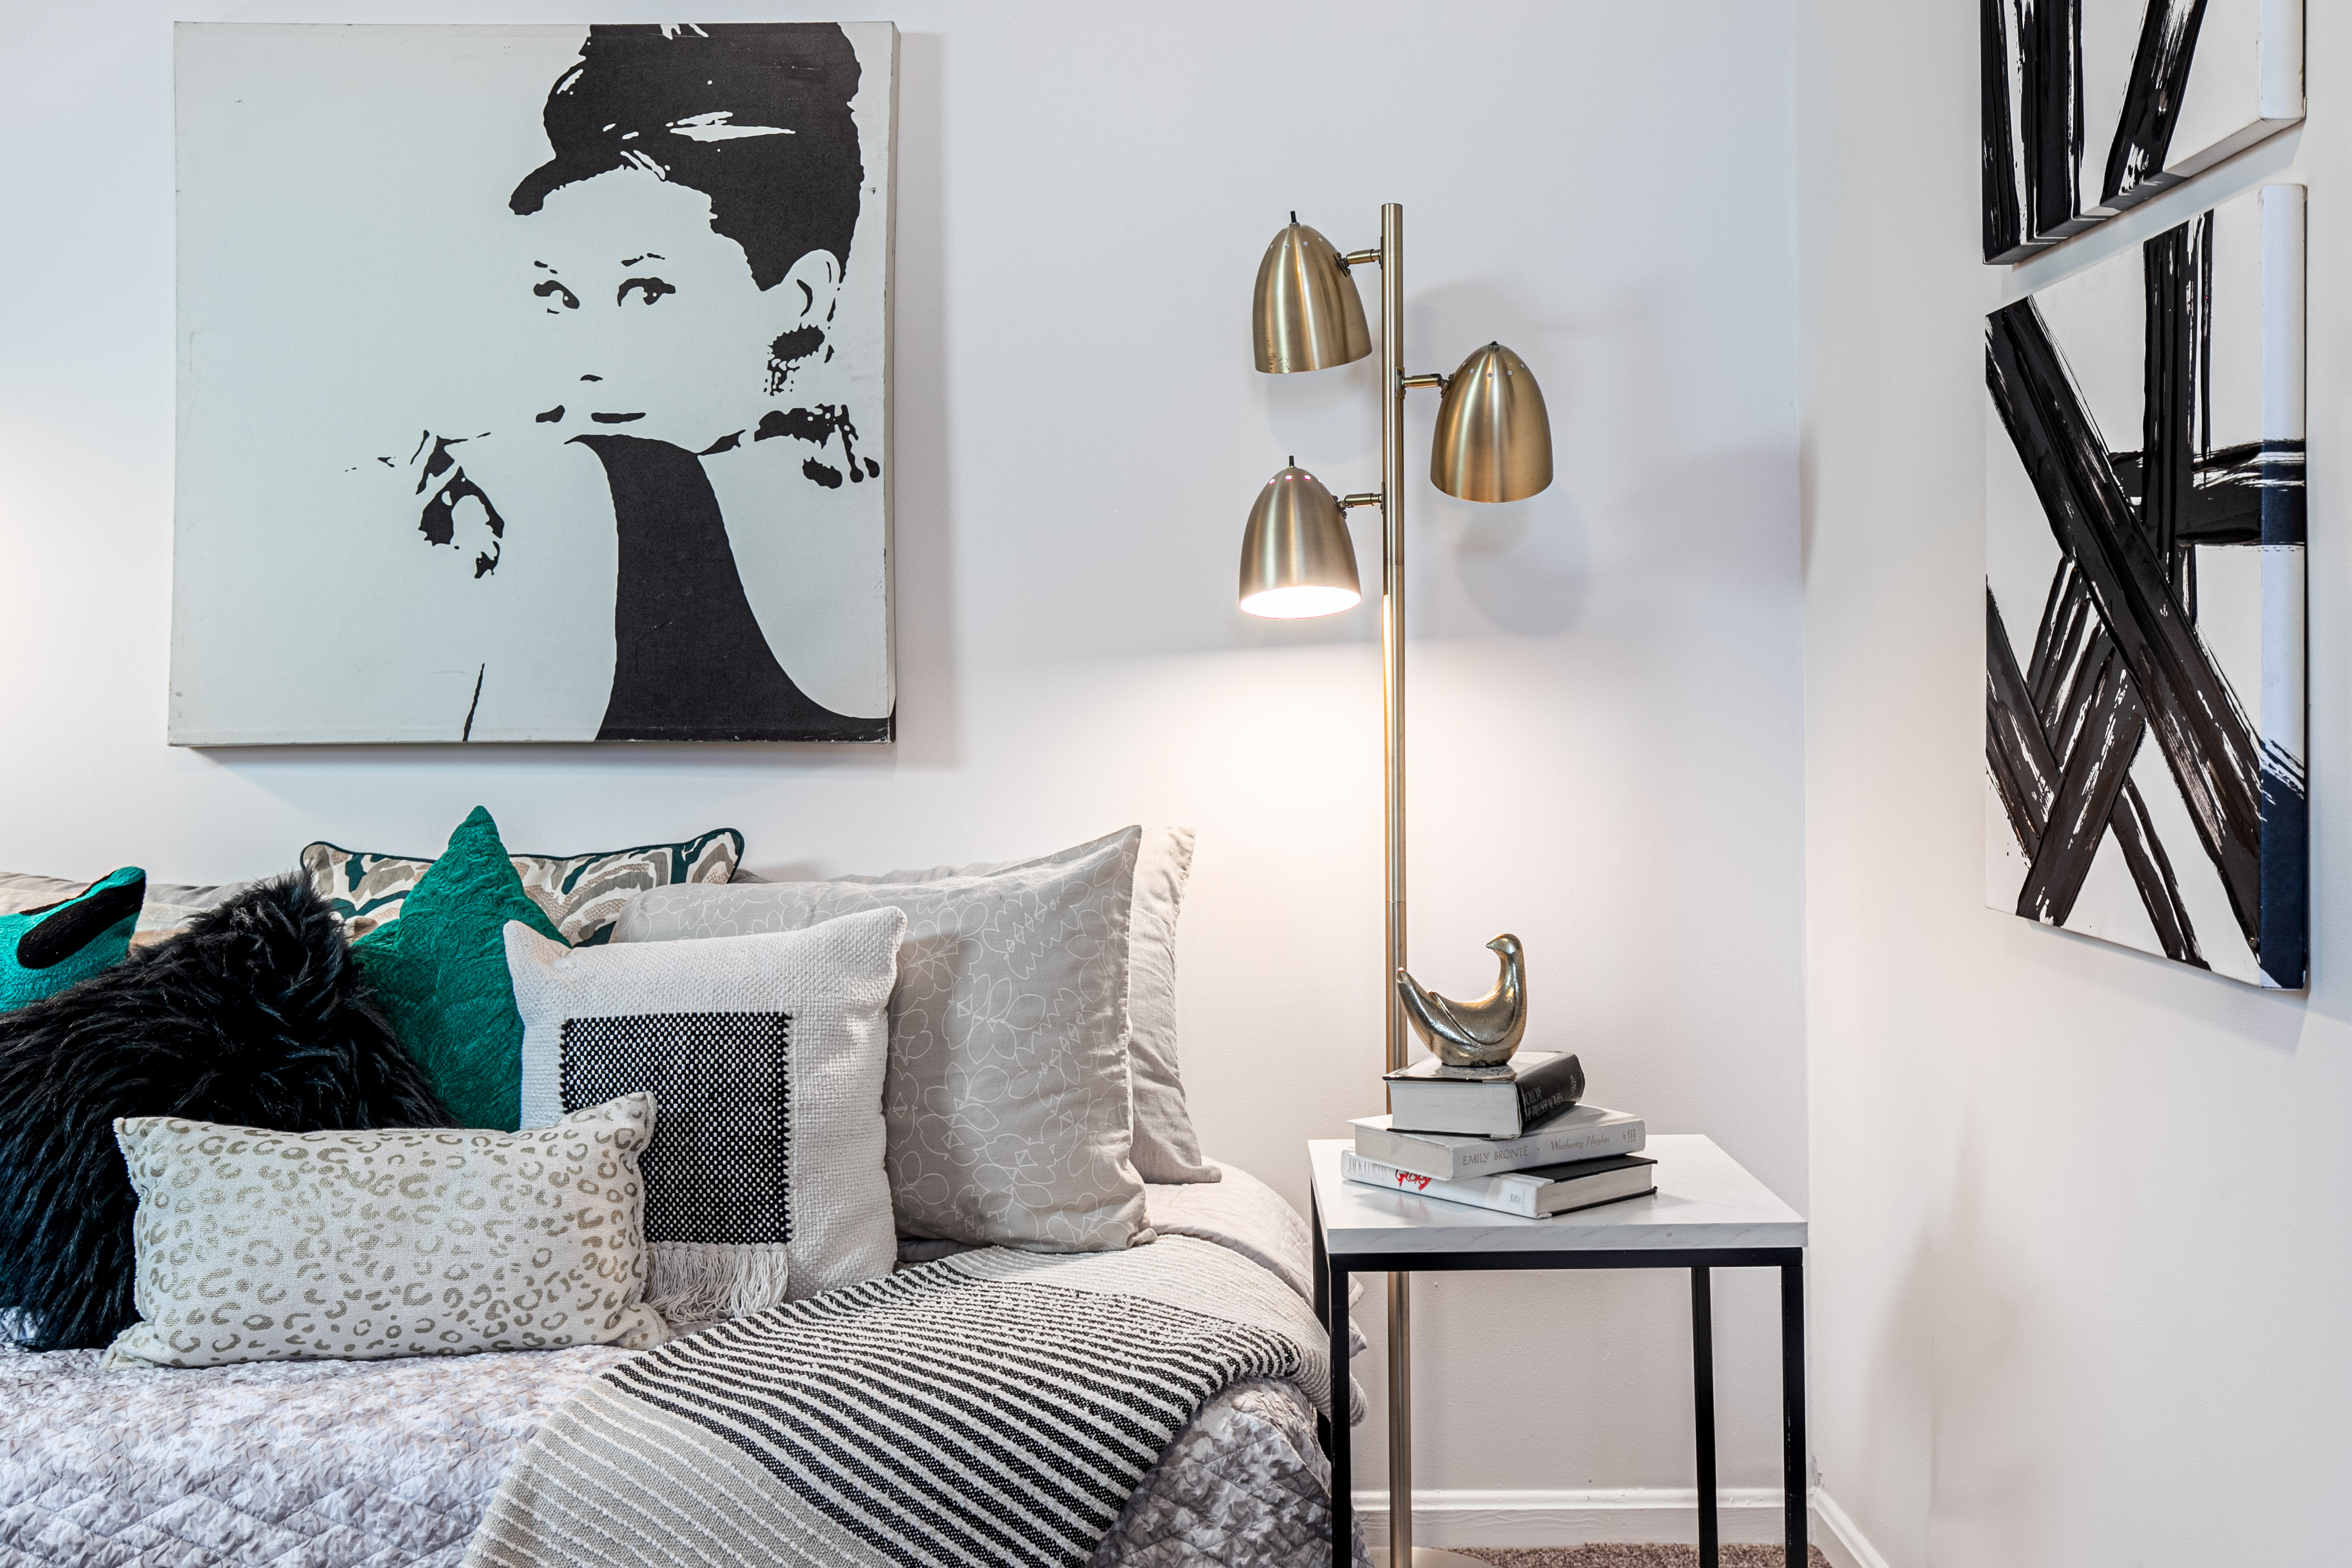 Cozy room with a chic flair